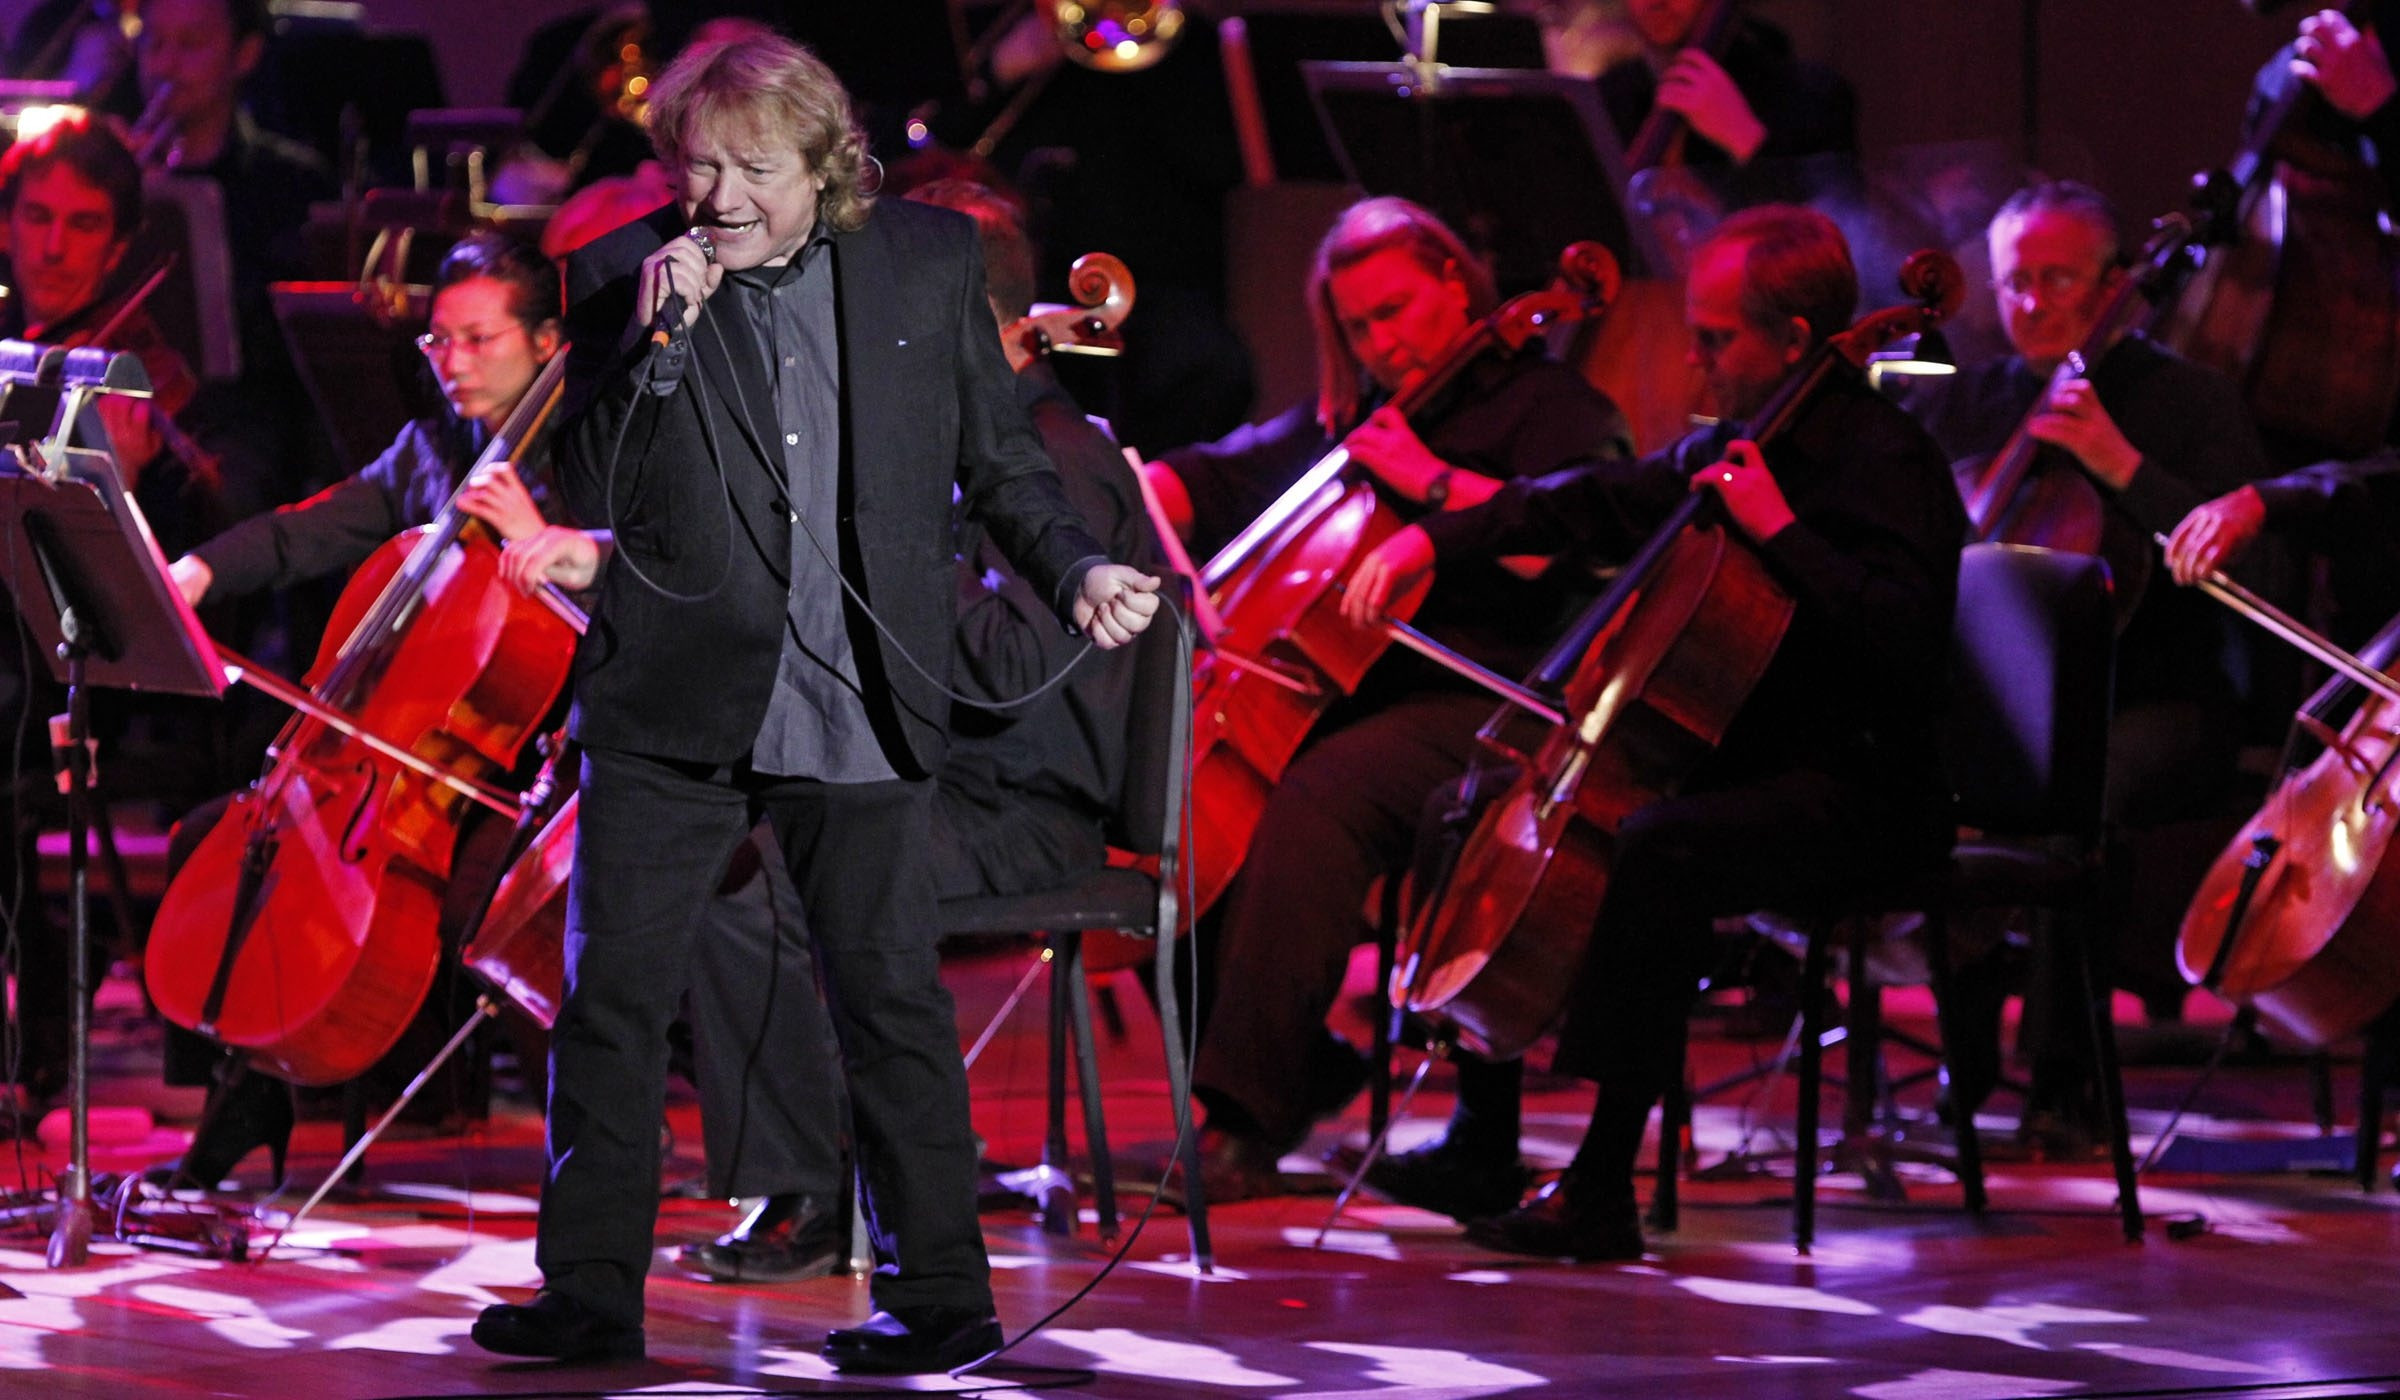 Lou Gramm, former lead singer with Foreigner, performs with the Buffalo Philharmonic Orchestra at Kleinhans Music Hall Friday night.